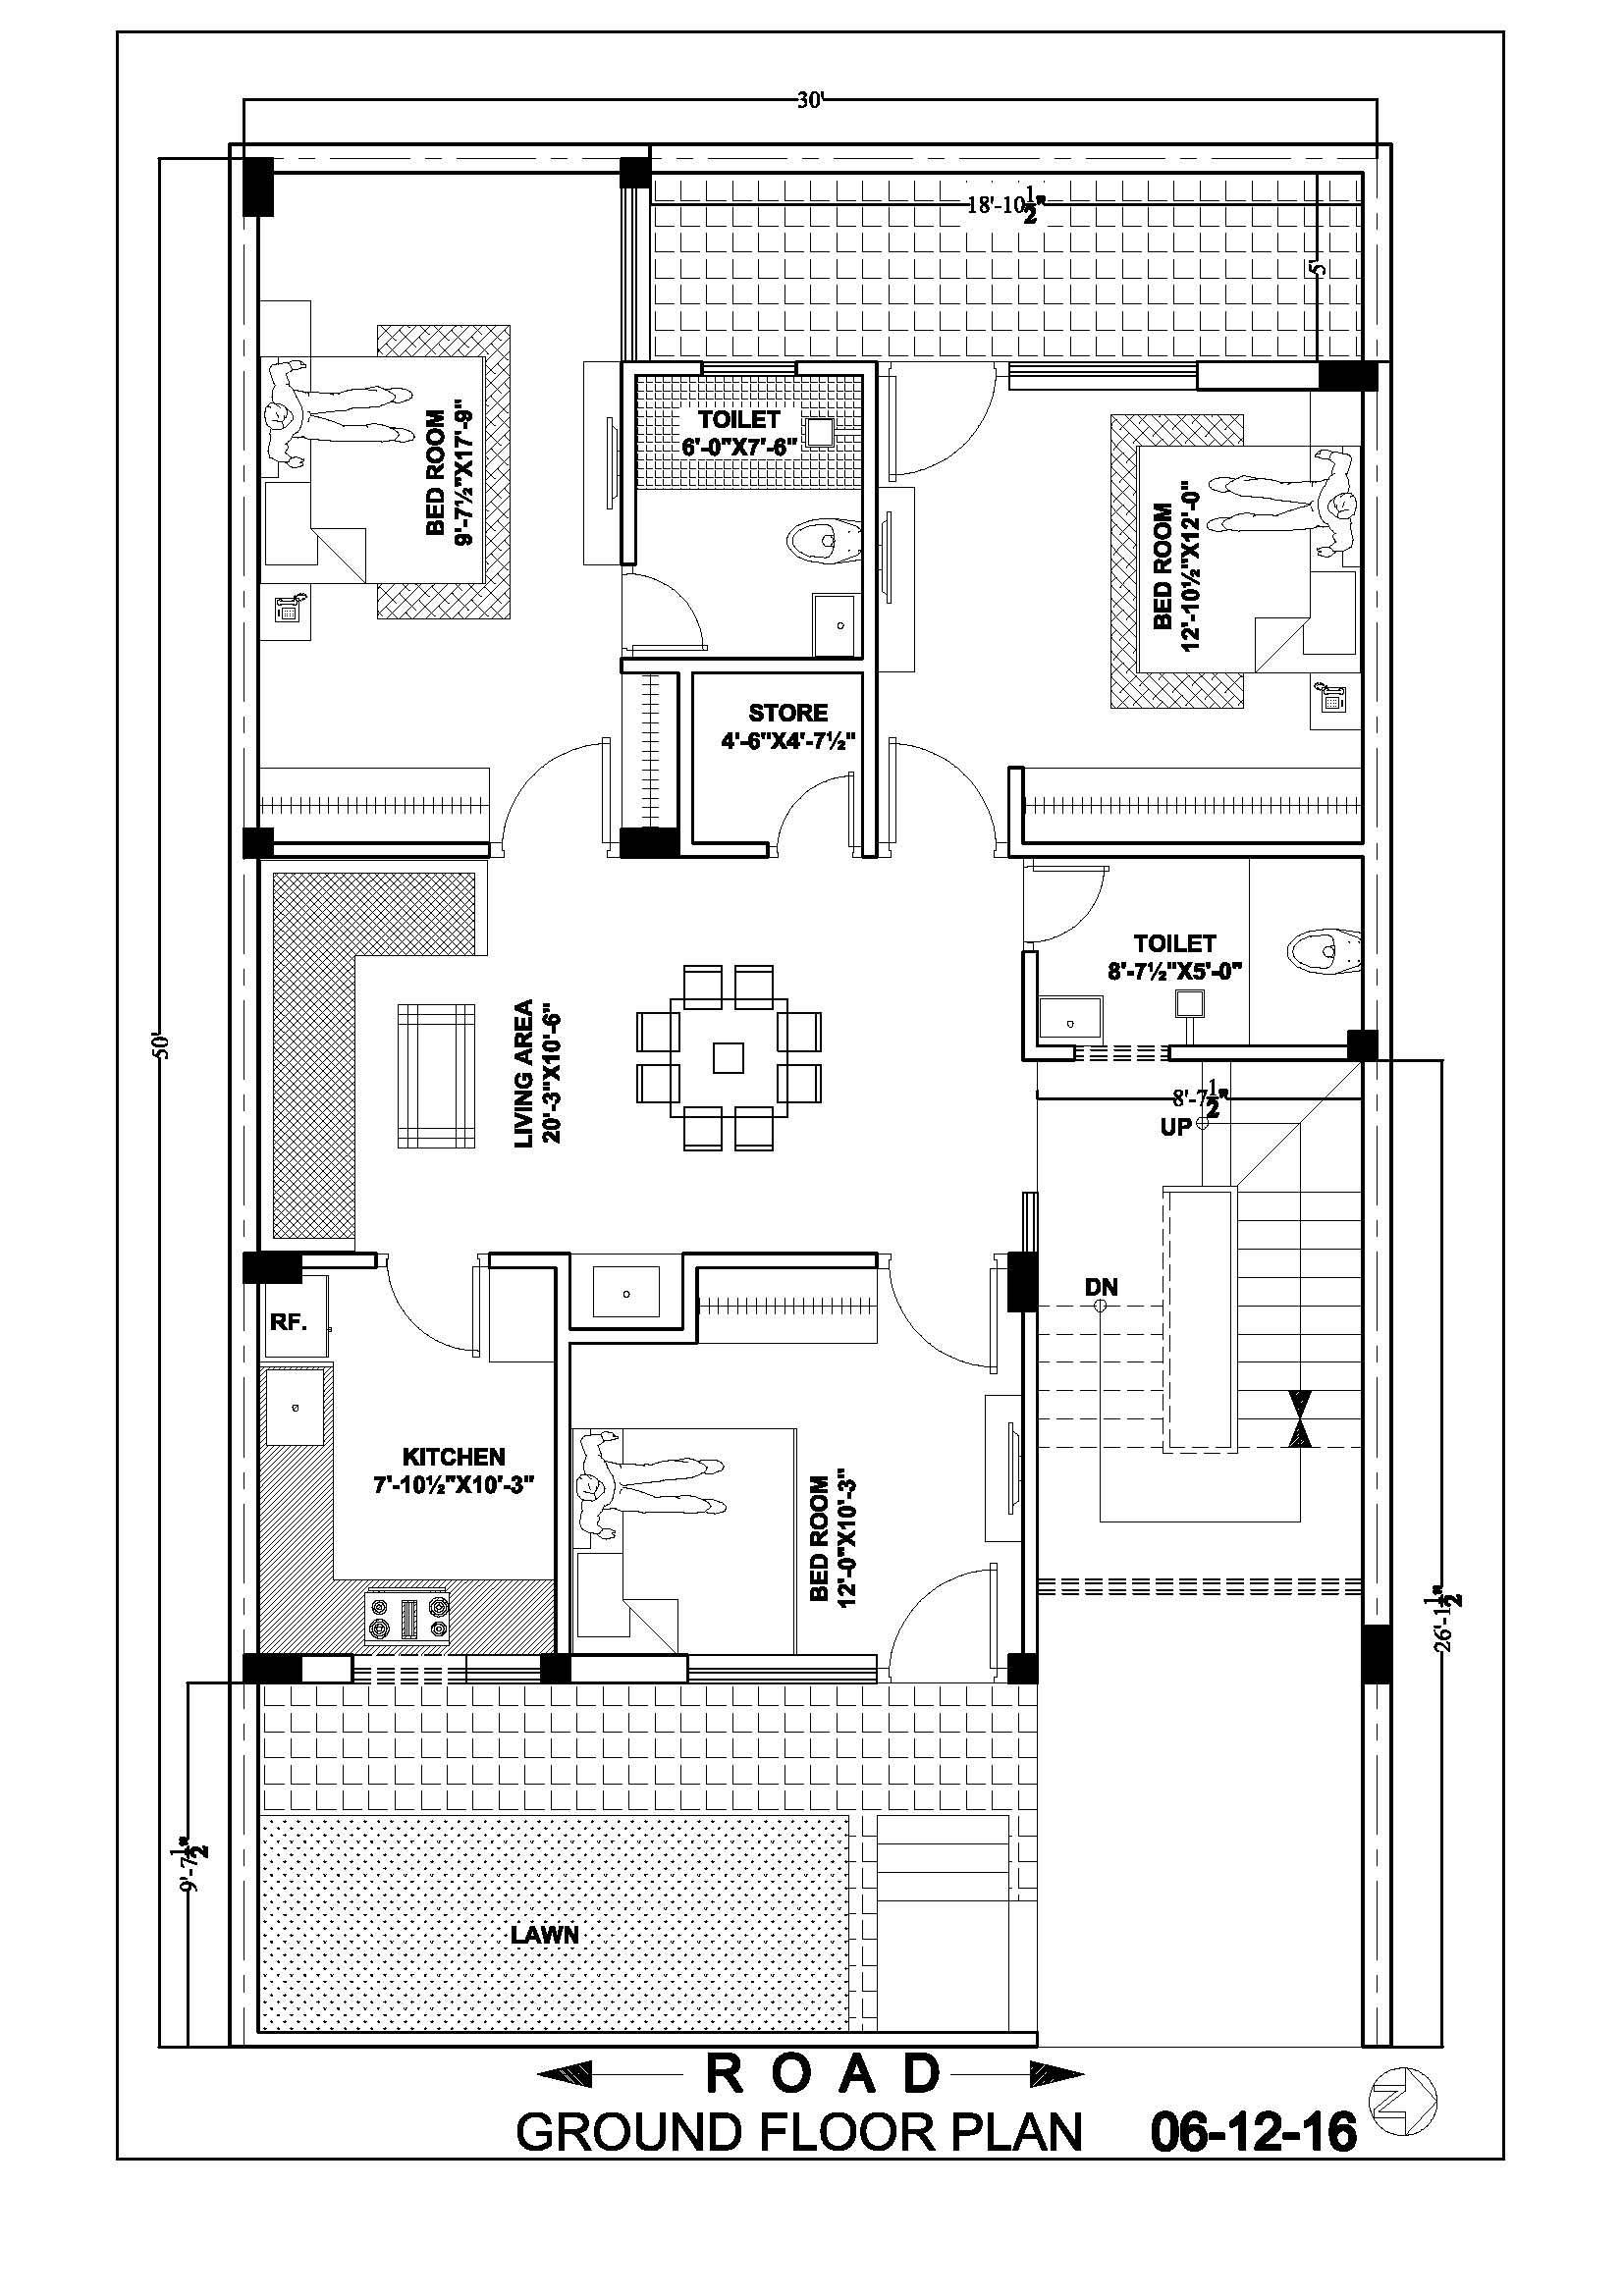 Fresh House Layout Plans 6 View In 2020 30x50 House Plans House Map Duplex Floor Plans